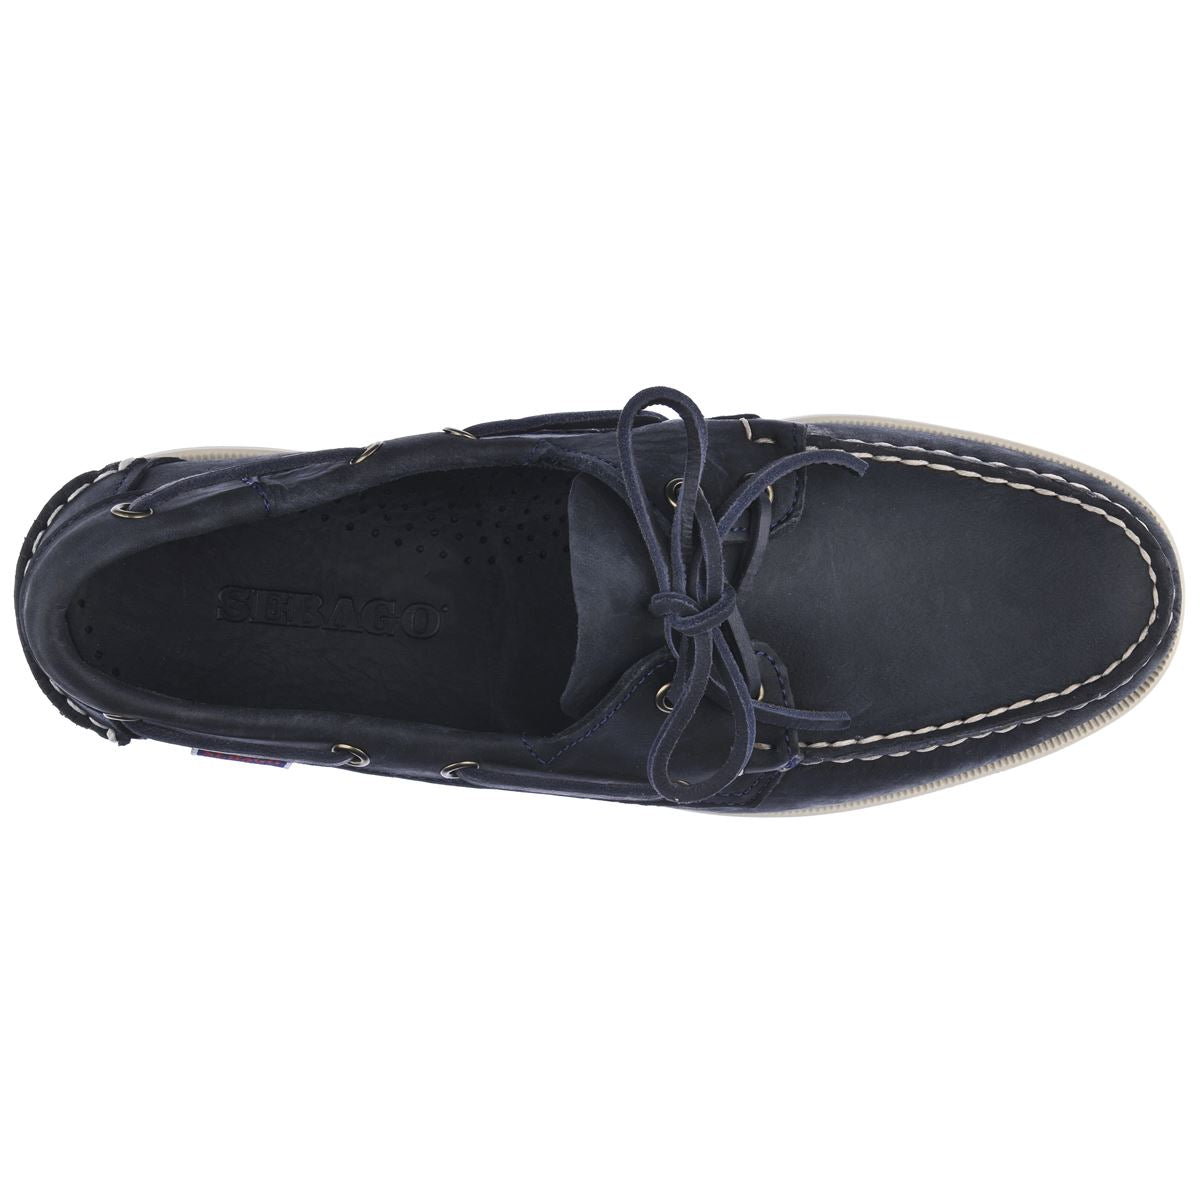 PORTLAND CRAZY HORSE - BLUE NAVY